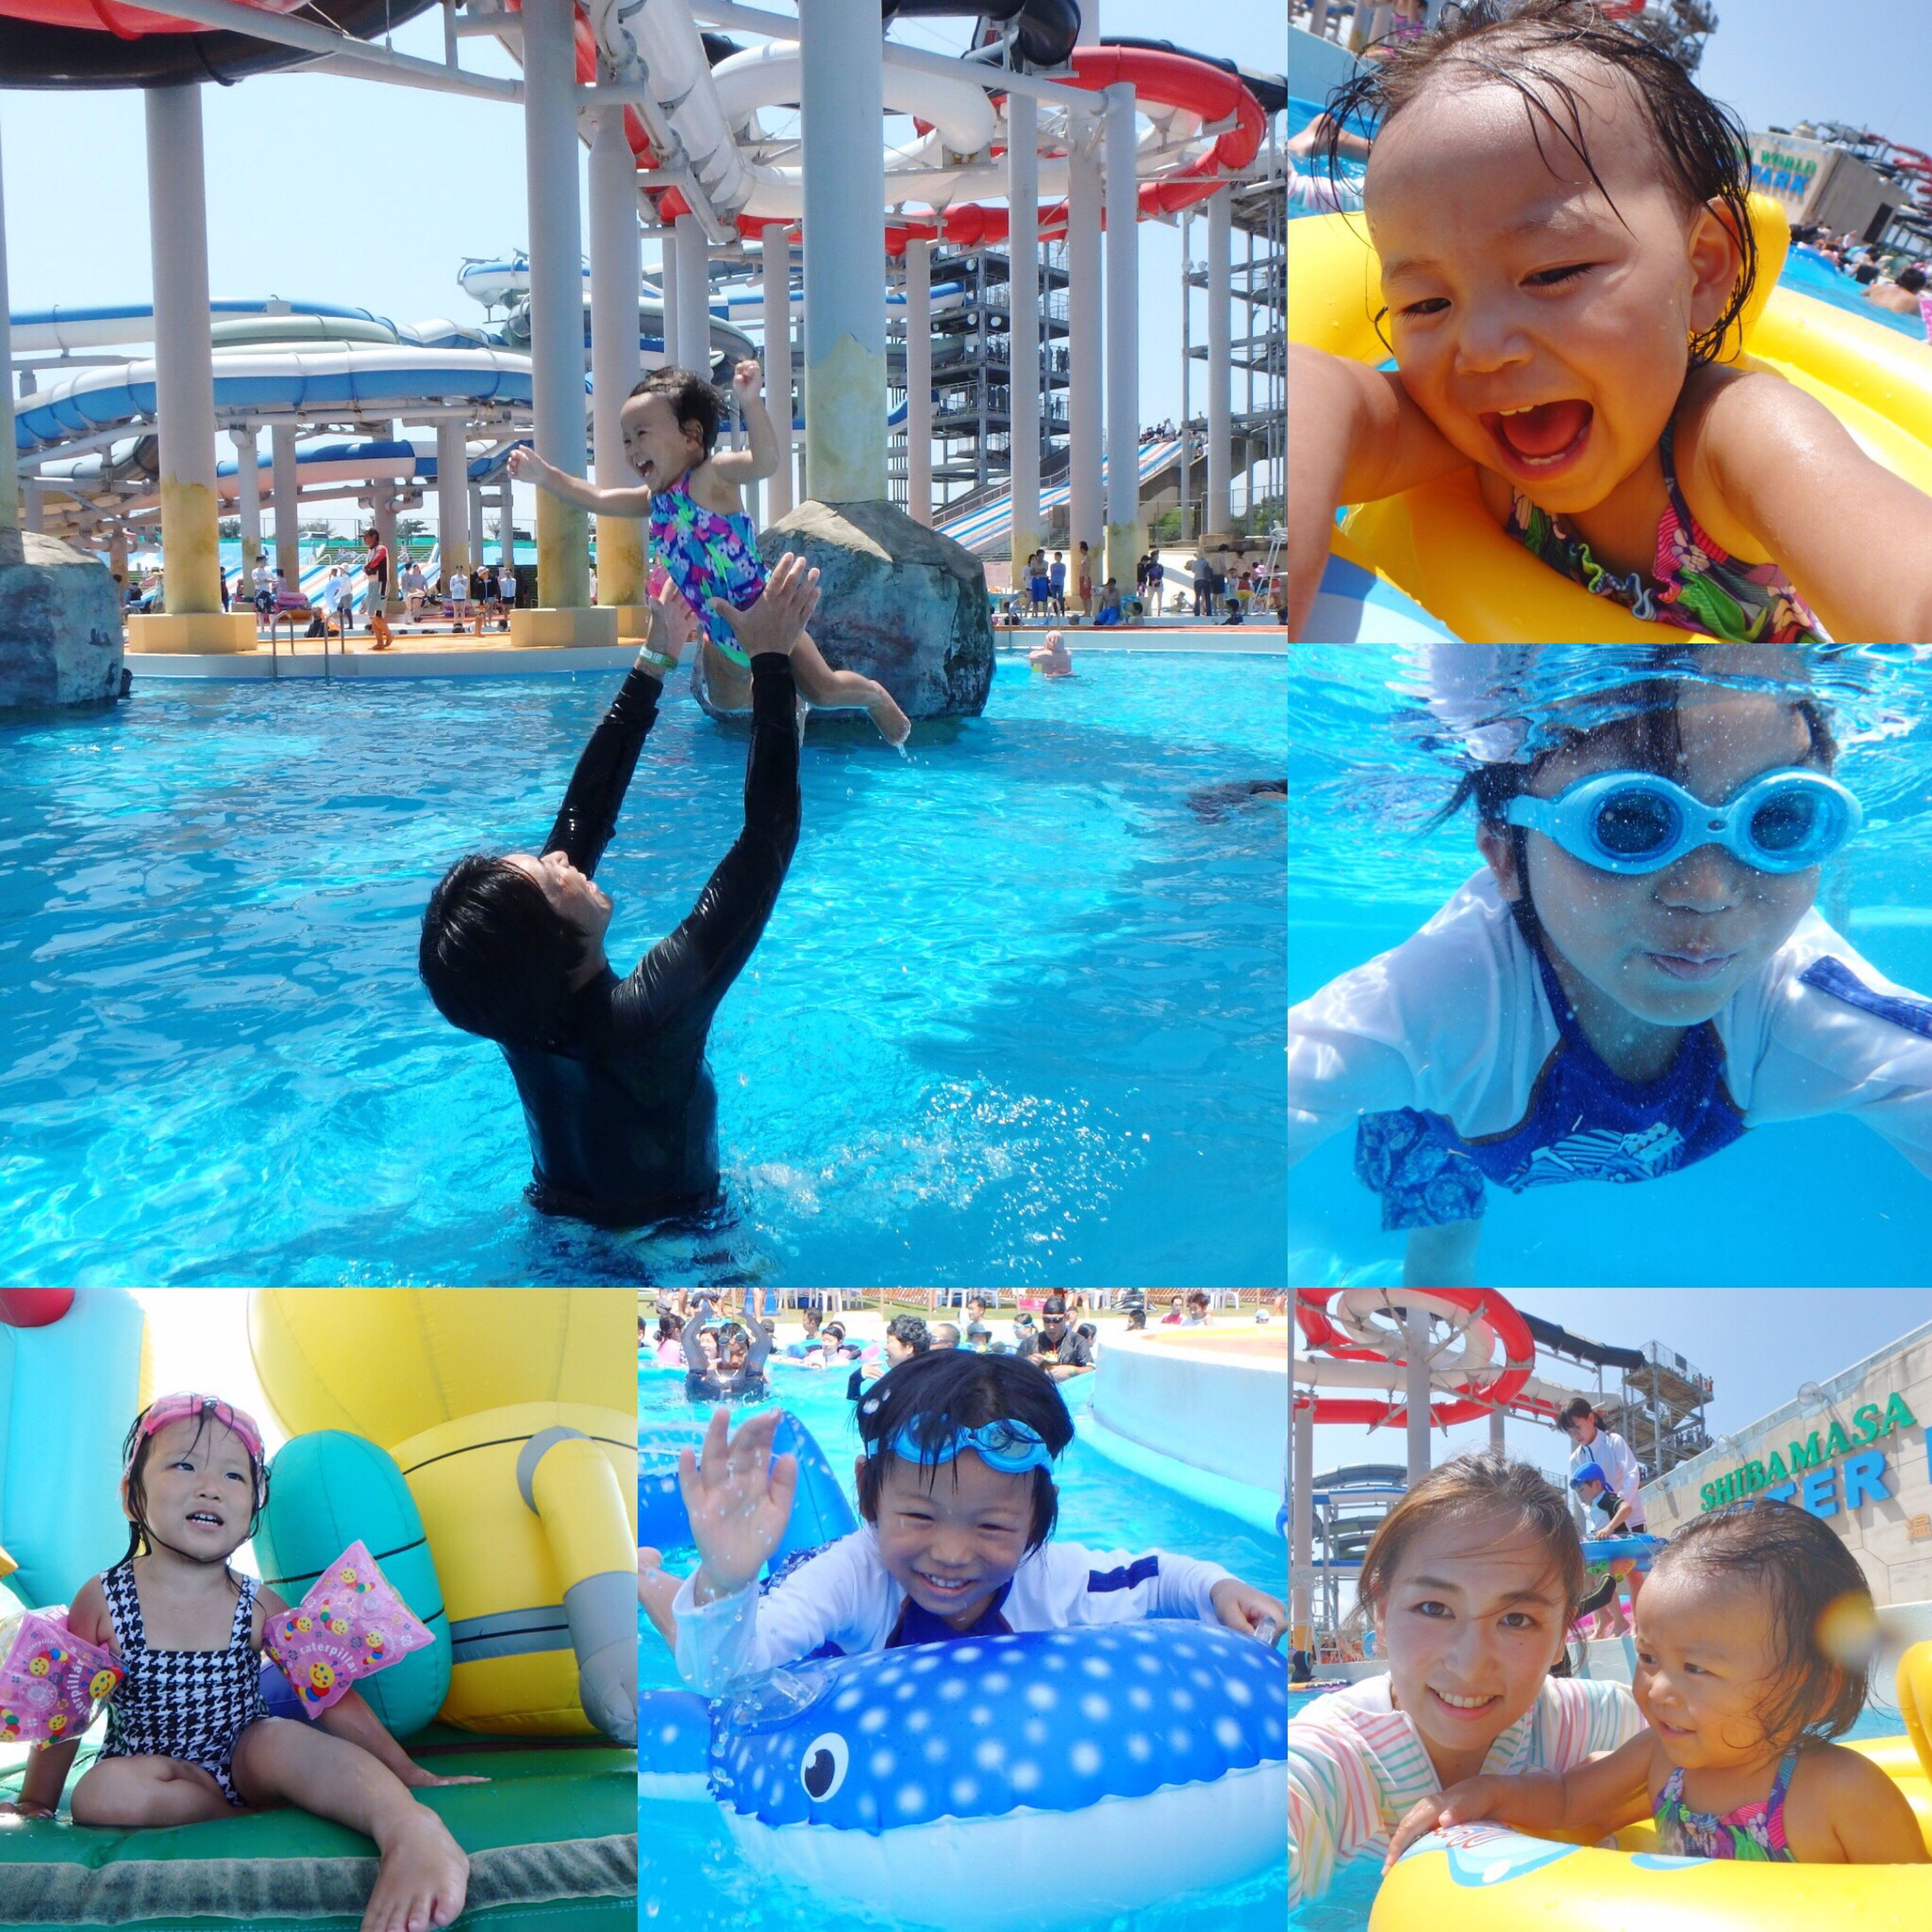 water, childhood, leisure activity, casual clothing, friendship, blue, fun, person, innocence, vacations